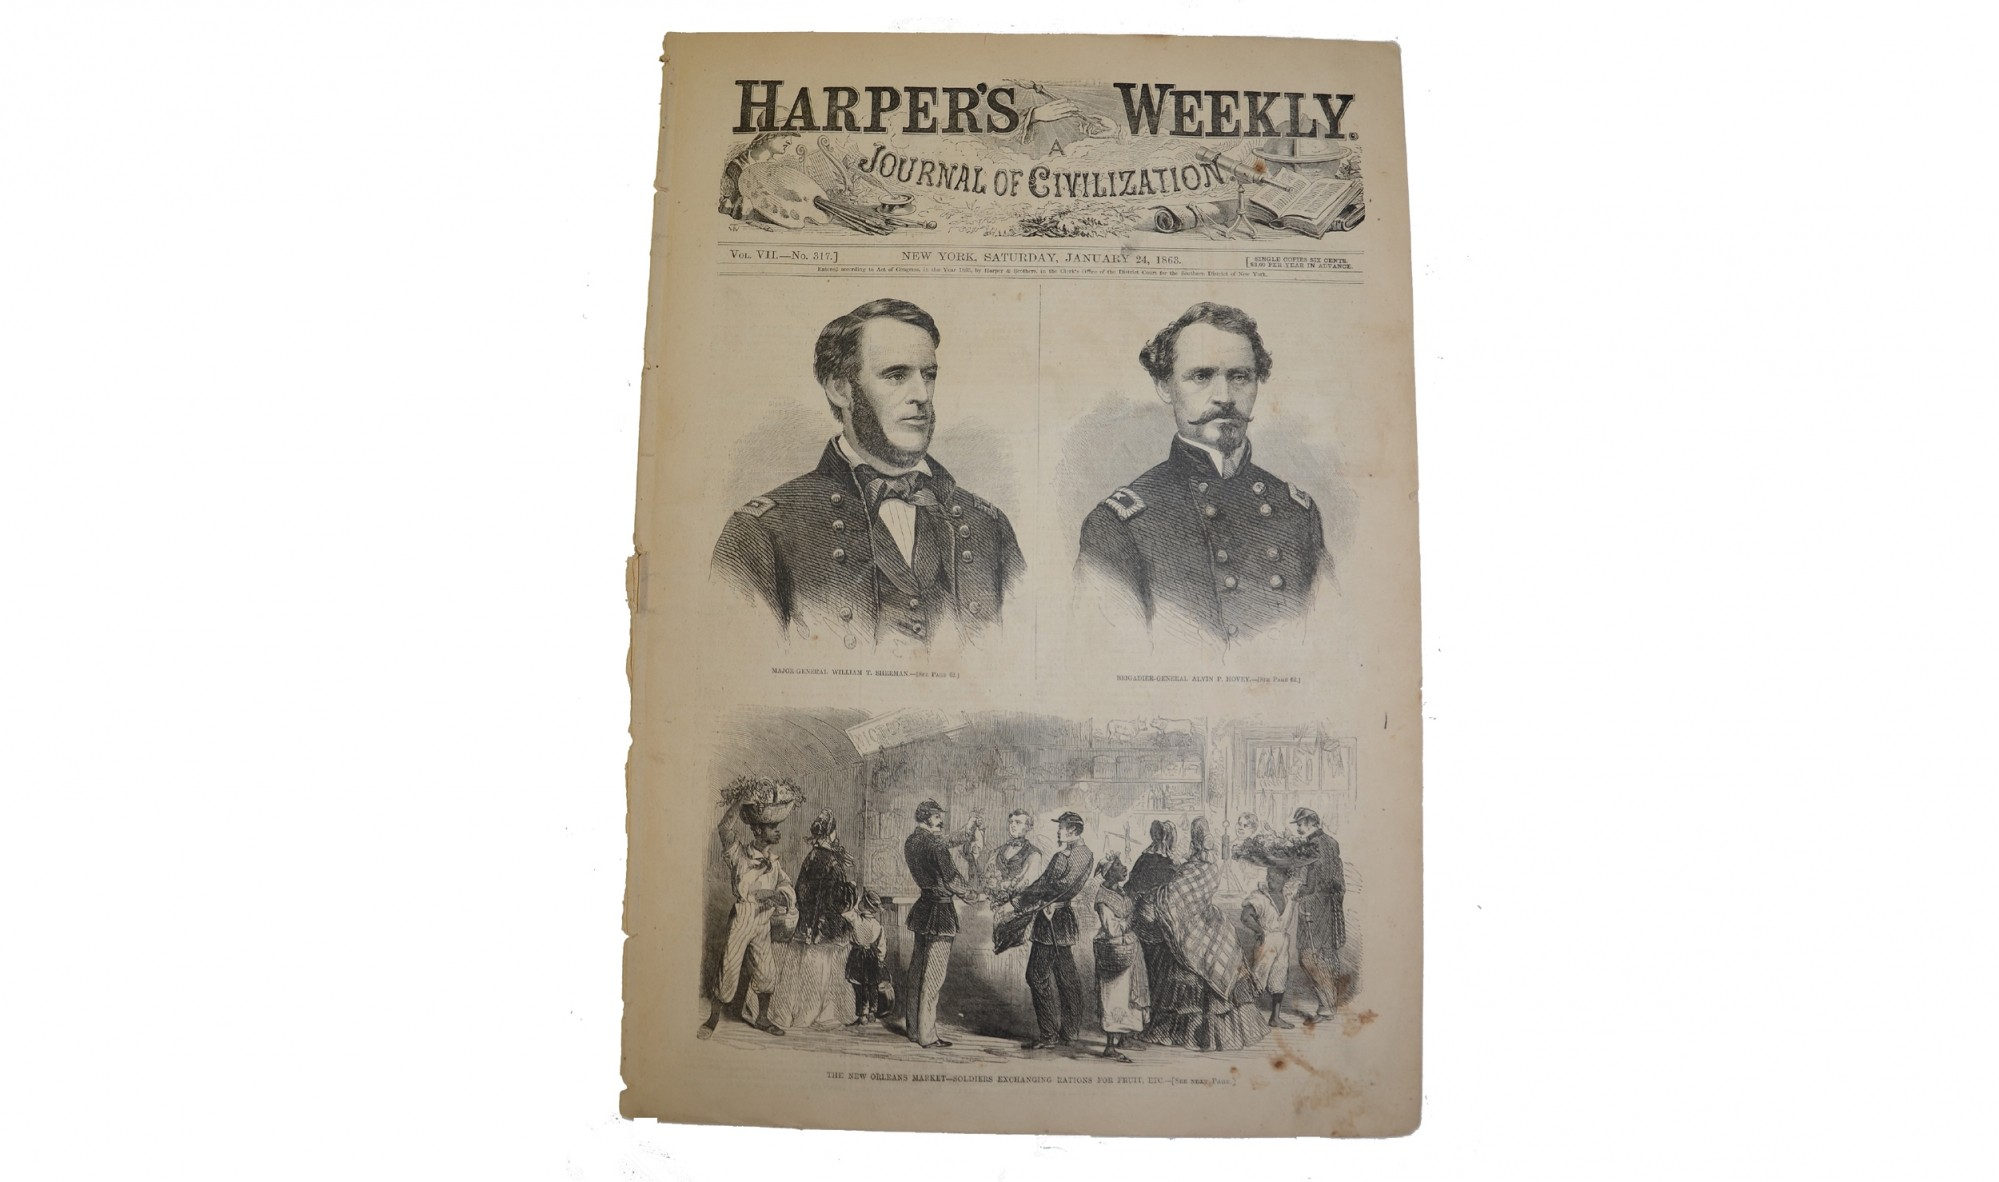 HARPER'S WEEKLY, DATED JANUARY 24, 1863 – GEN. SHERMAN / EMANCIPATION